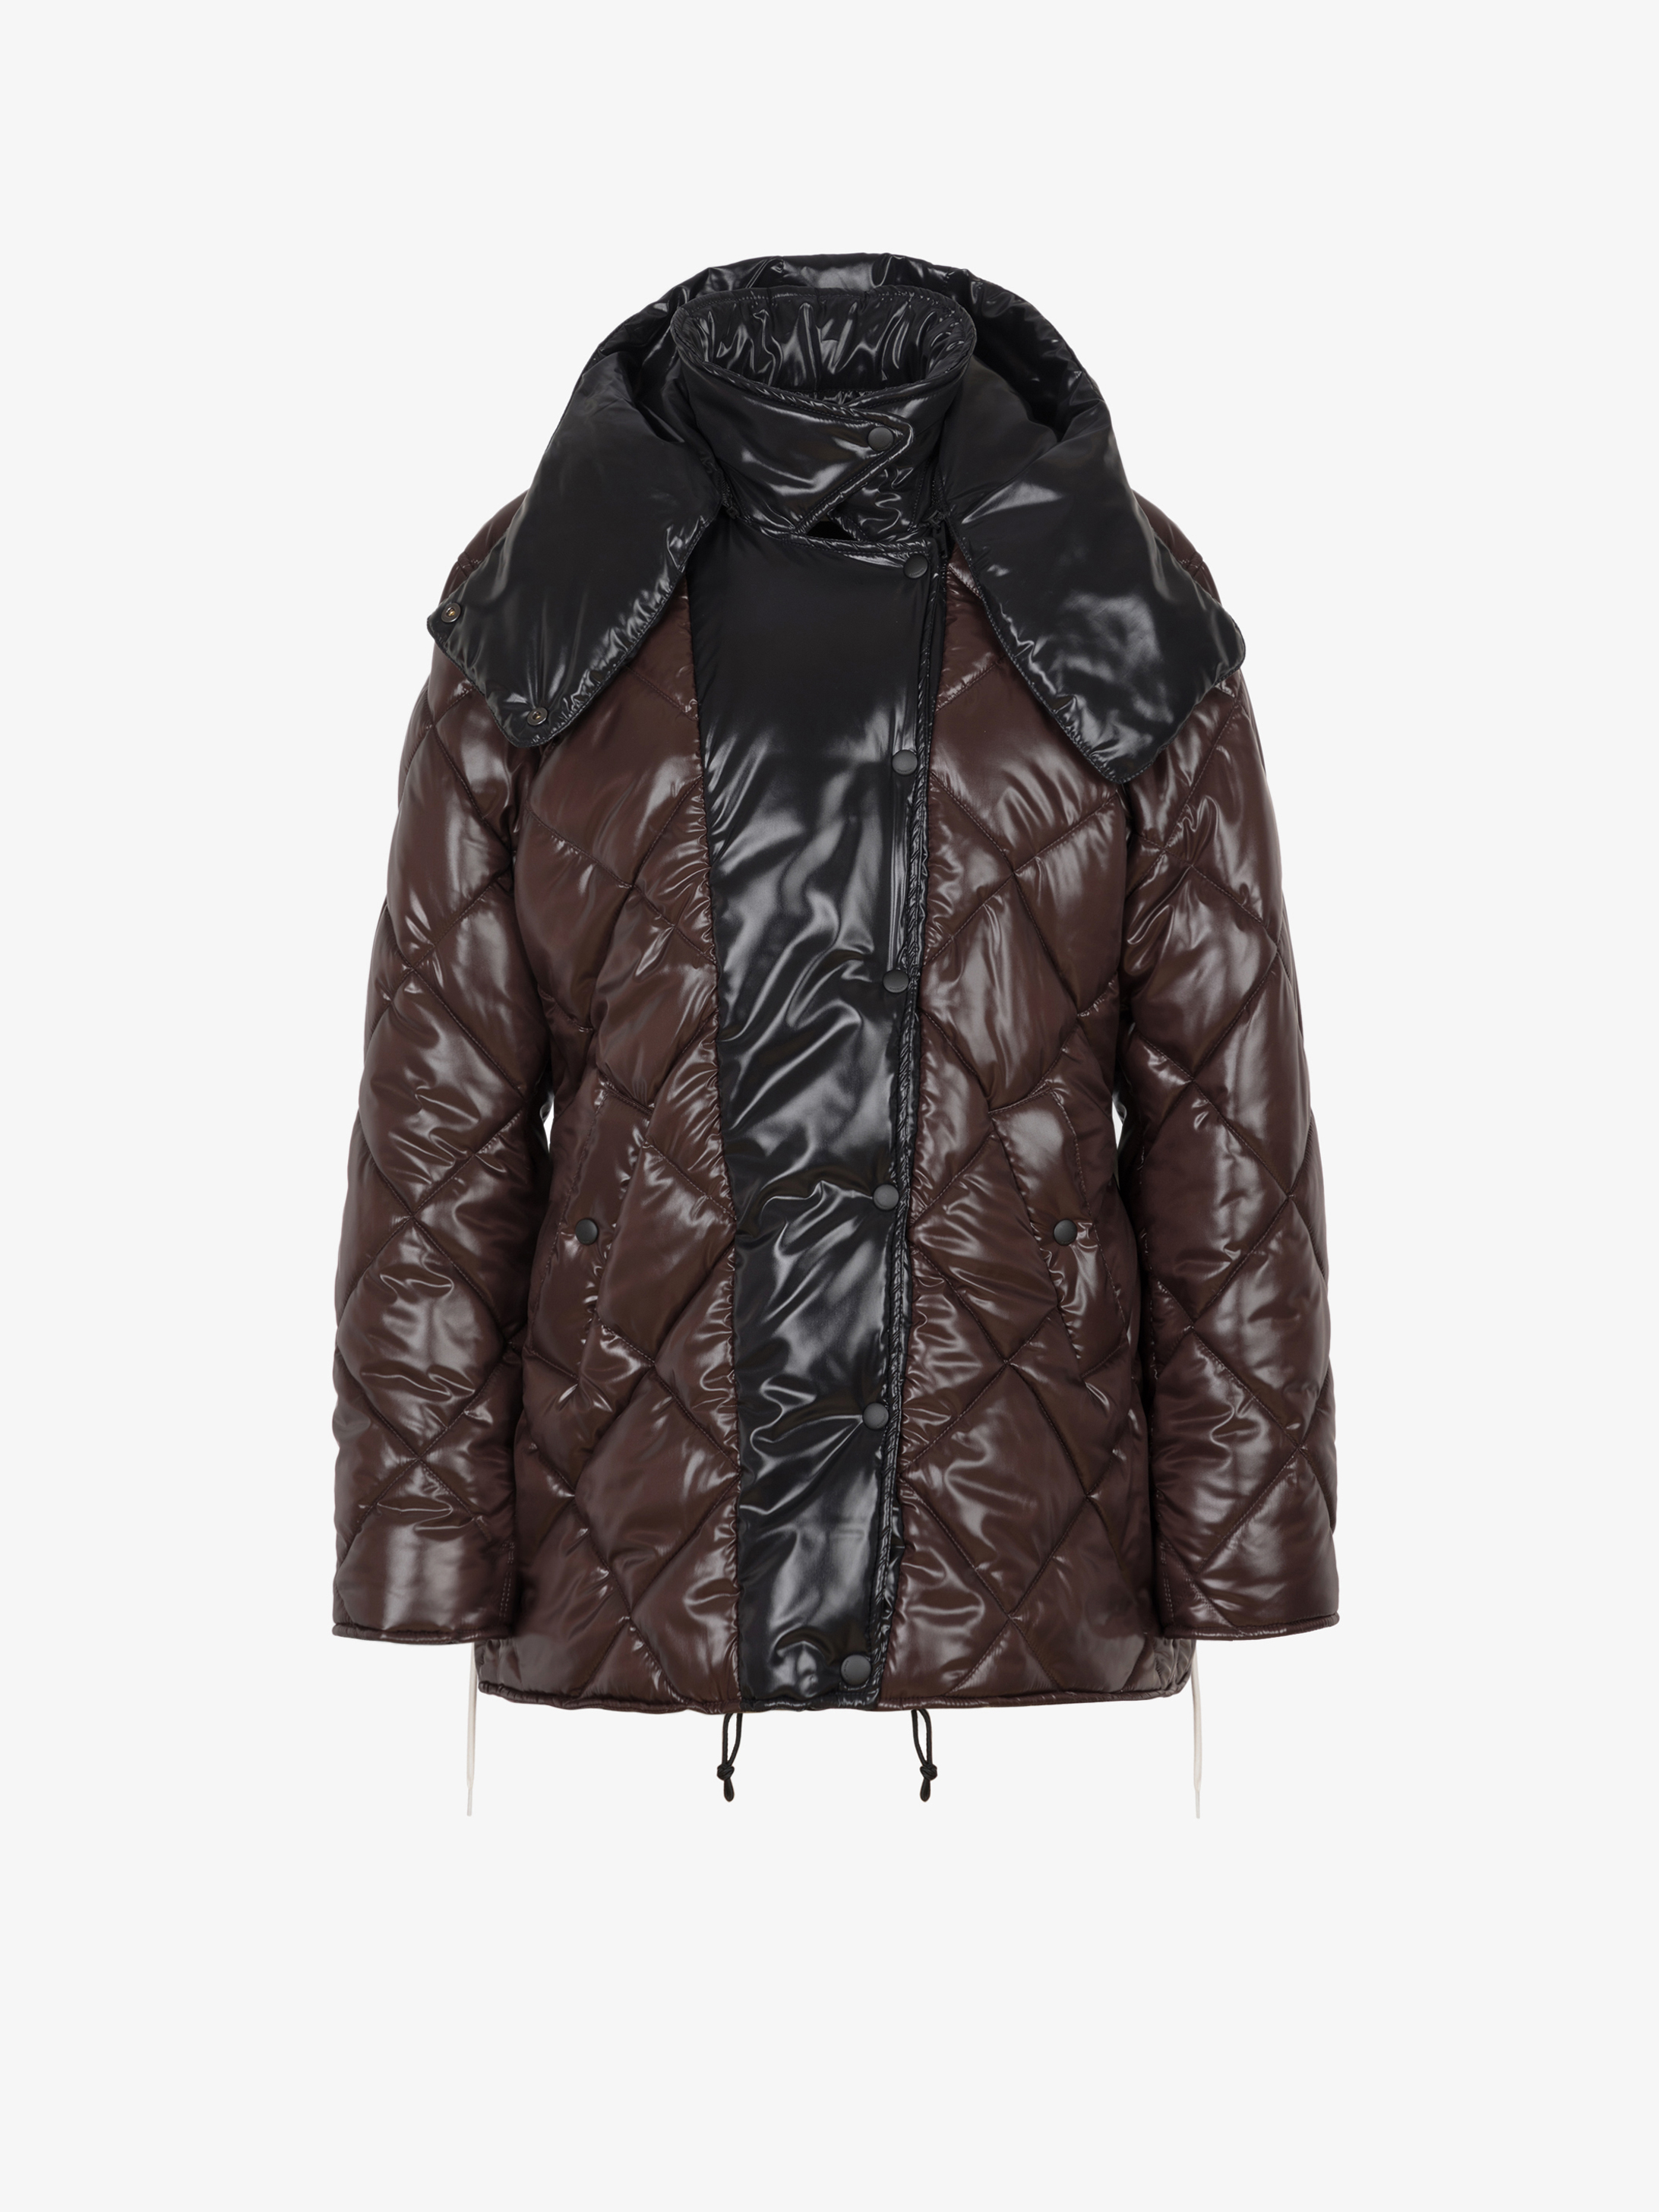 GIVENCHY puffa jacket with removable hood